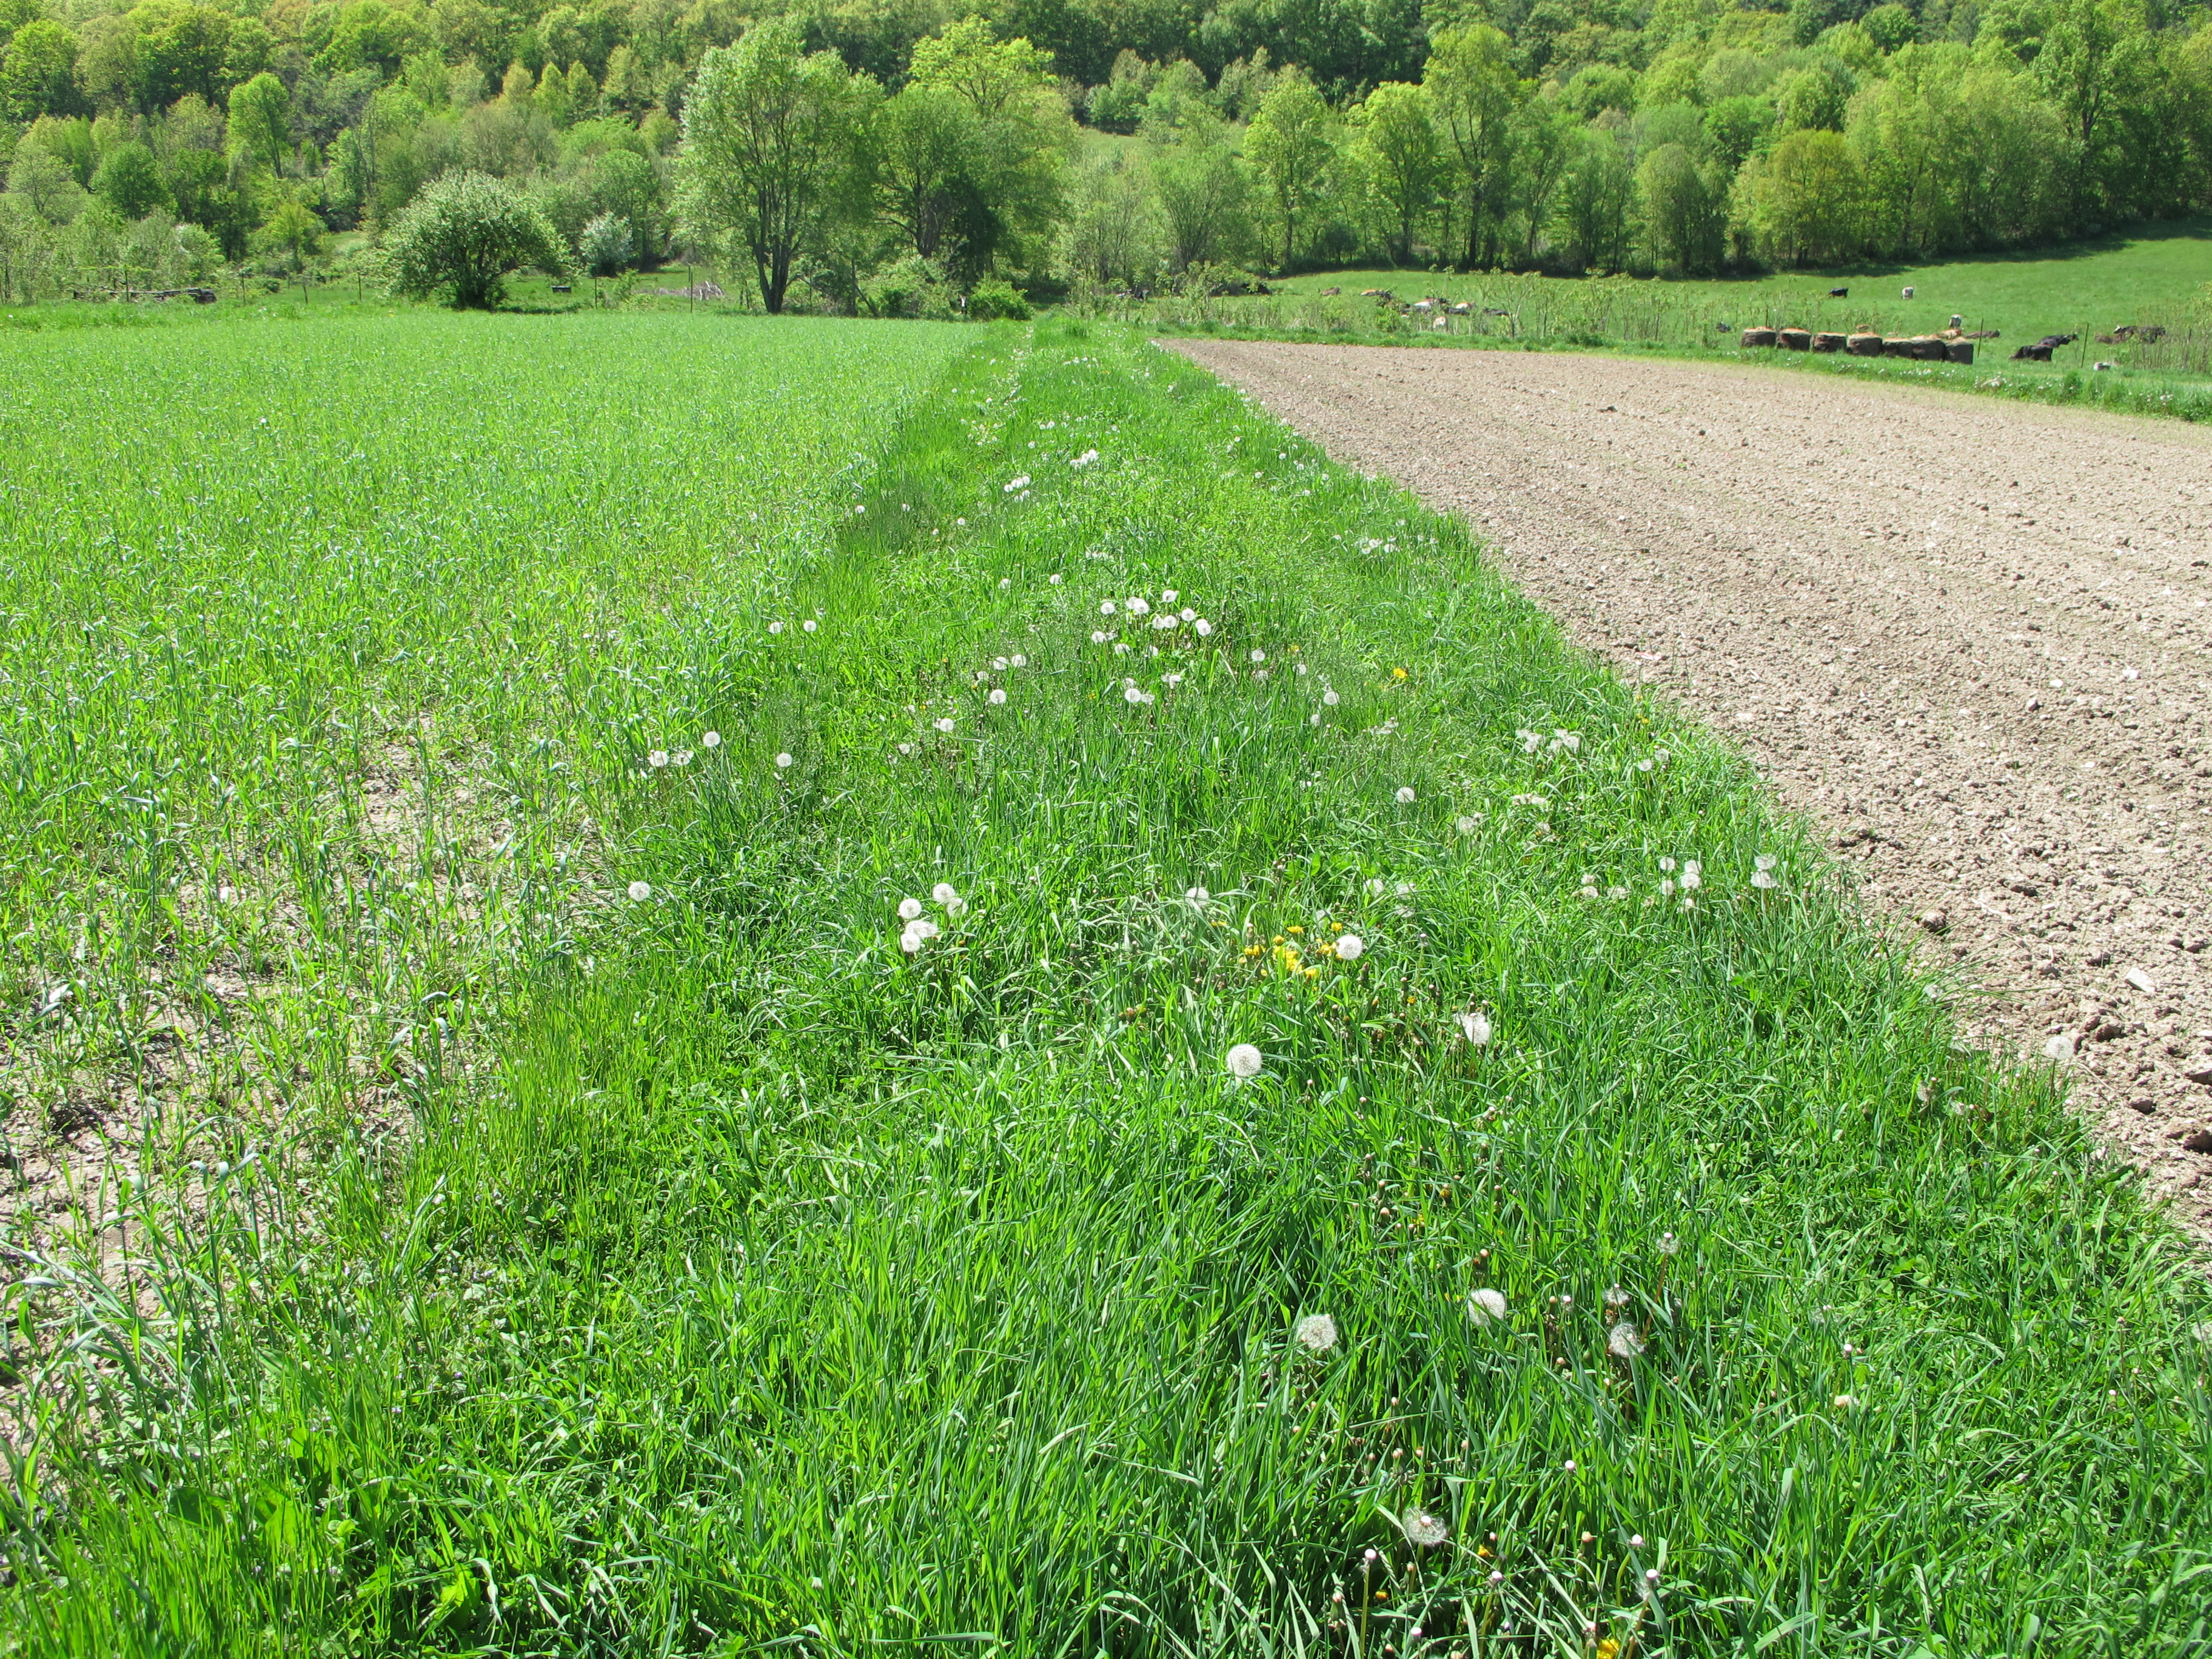 a strip of grass speckled with dandelions